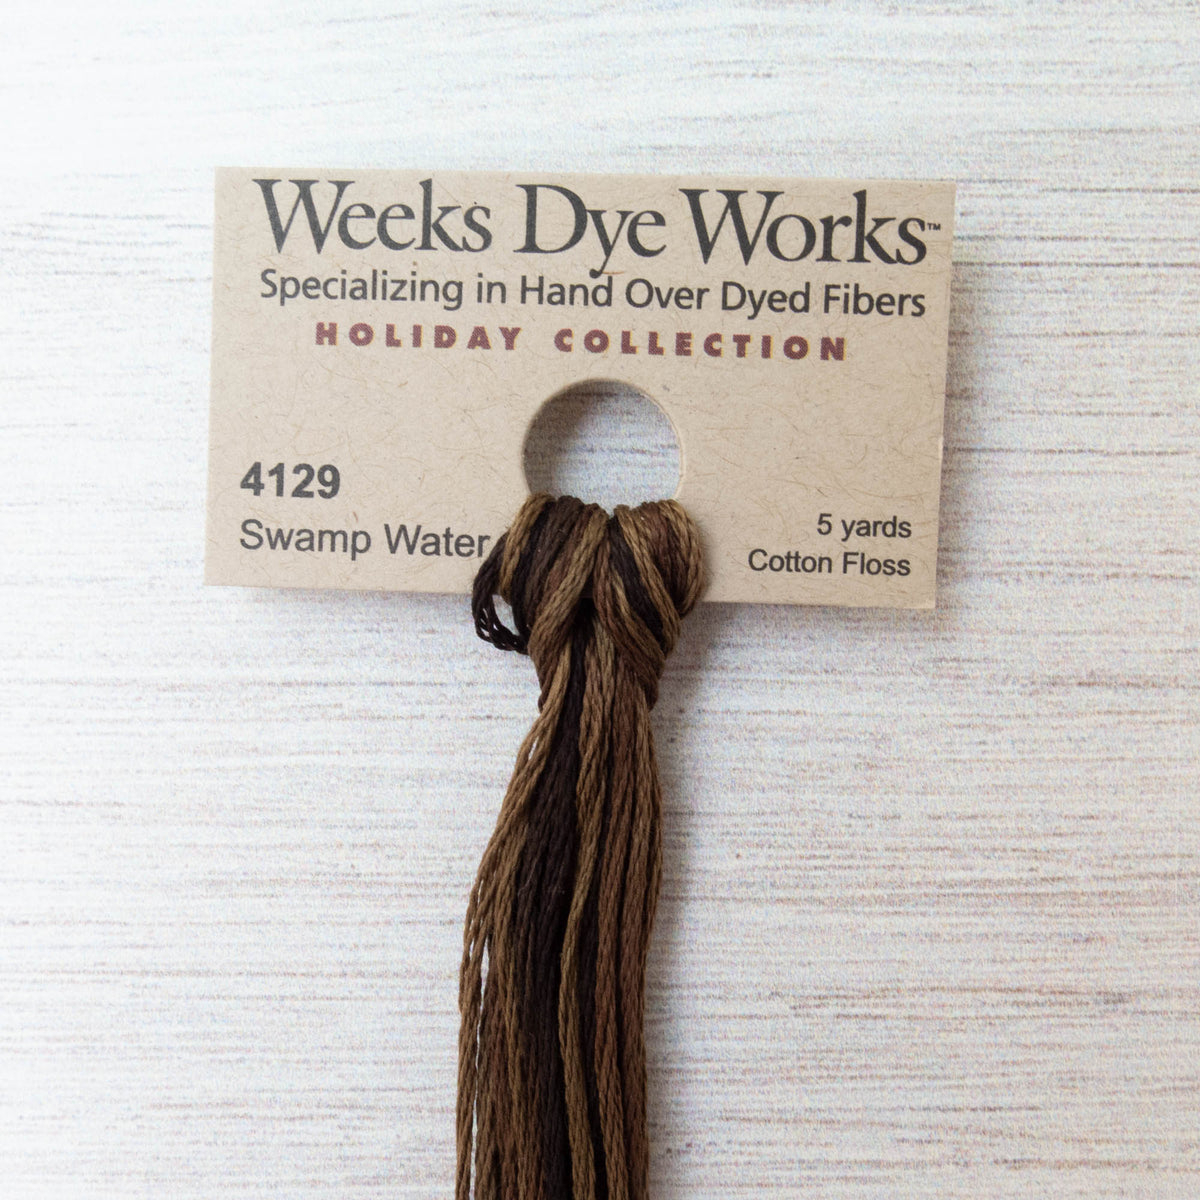 Weeks Dye Works Hand Over Dyed Embroidery Floss - Swamp Water (4129)